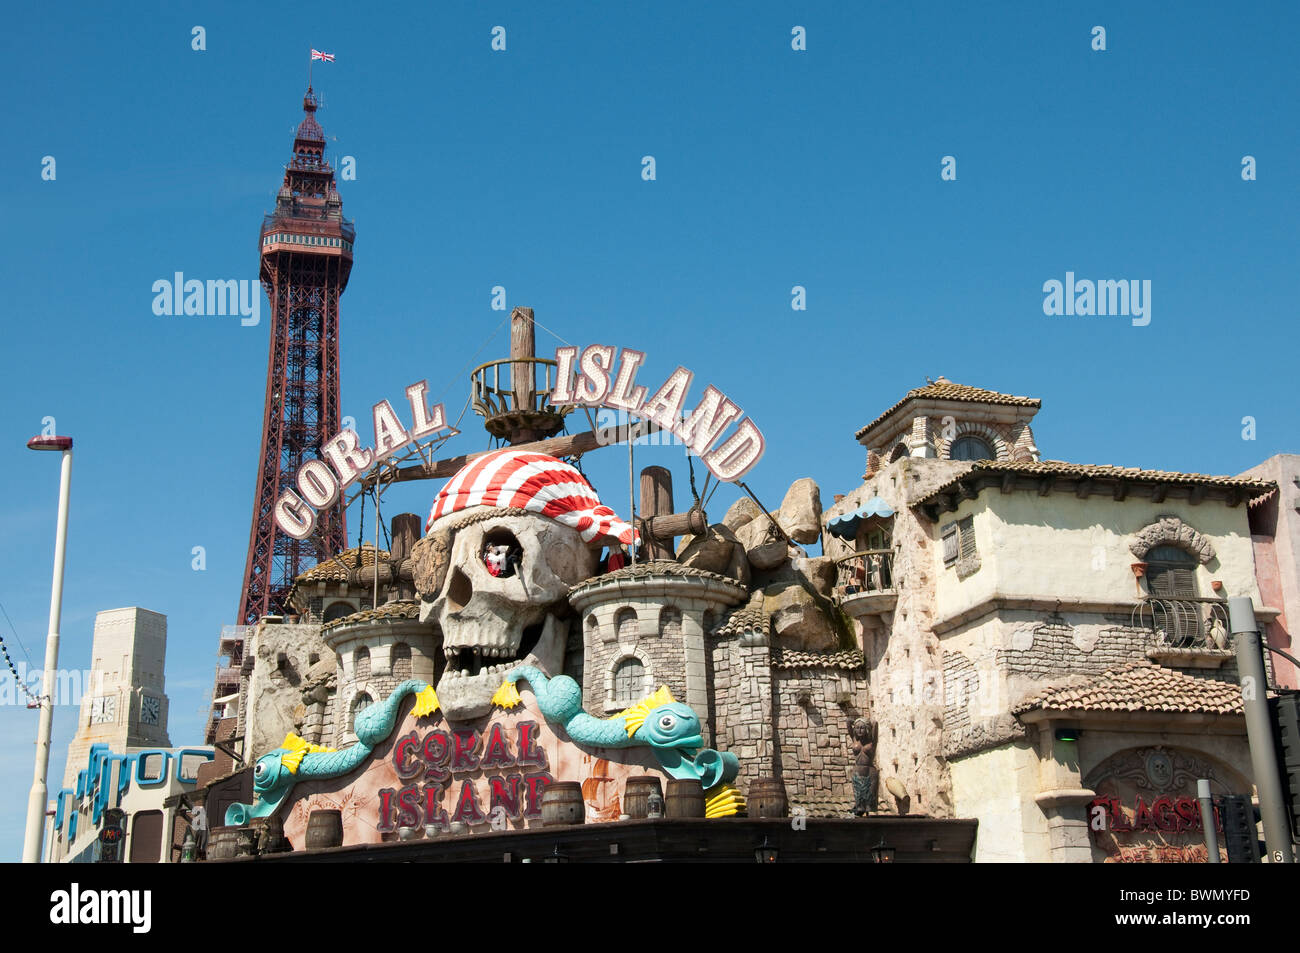 Coral island on the promenade in Blackpool on the coast of Lancashire in Northern England - Stock Image